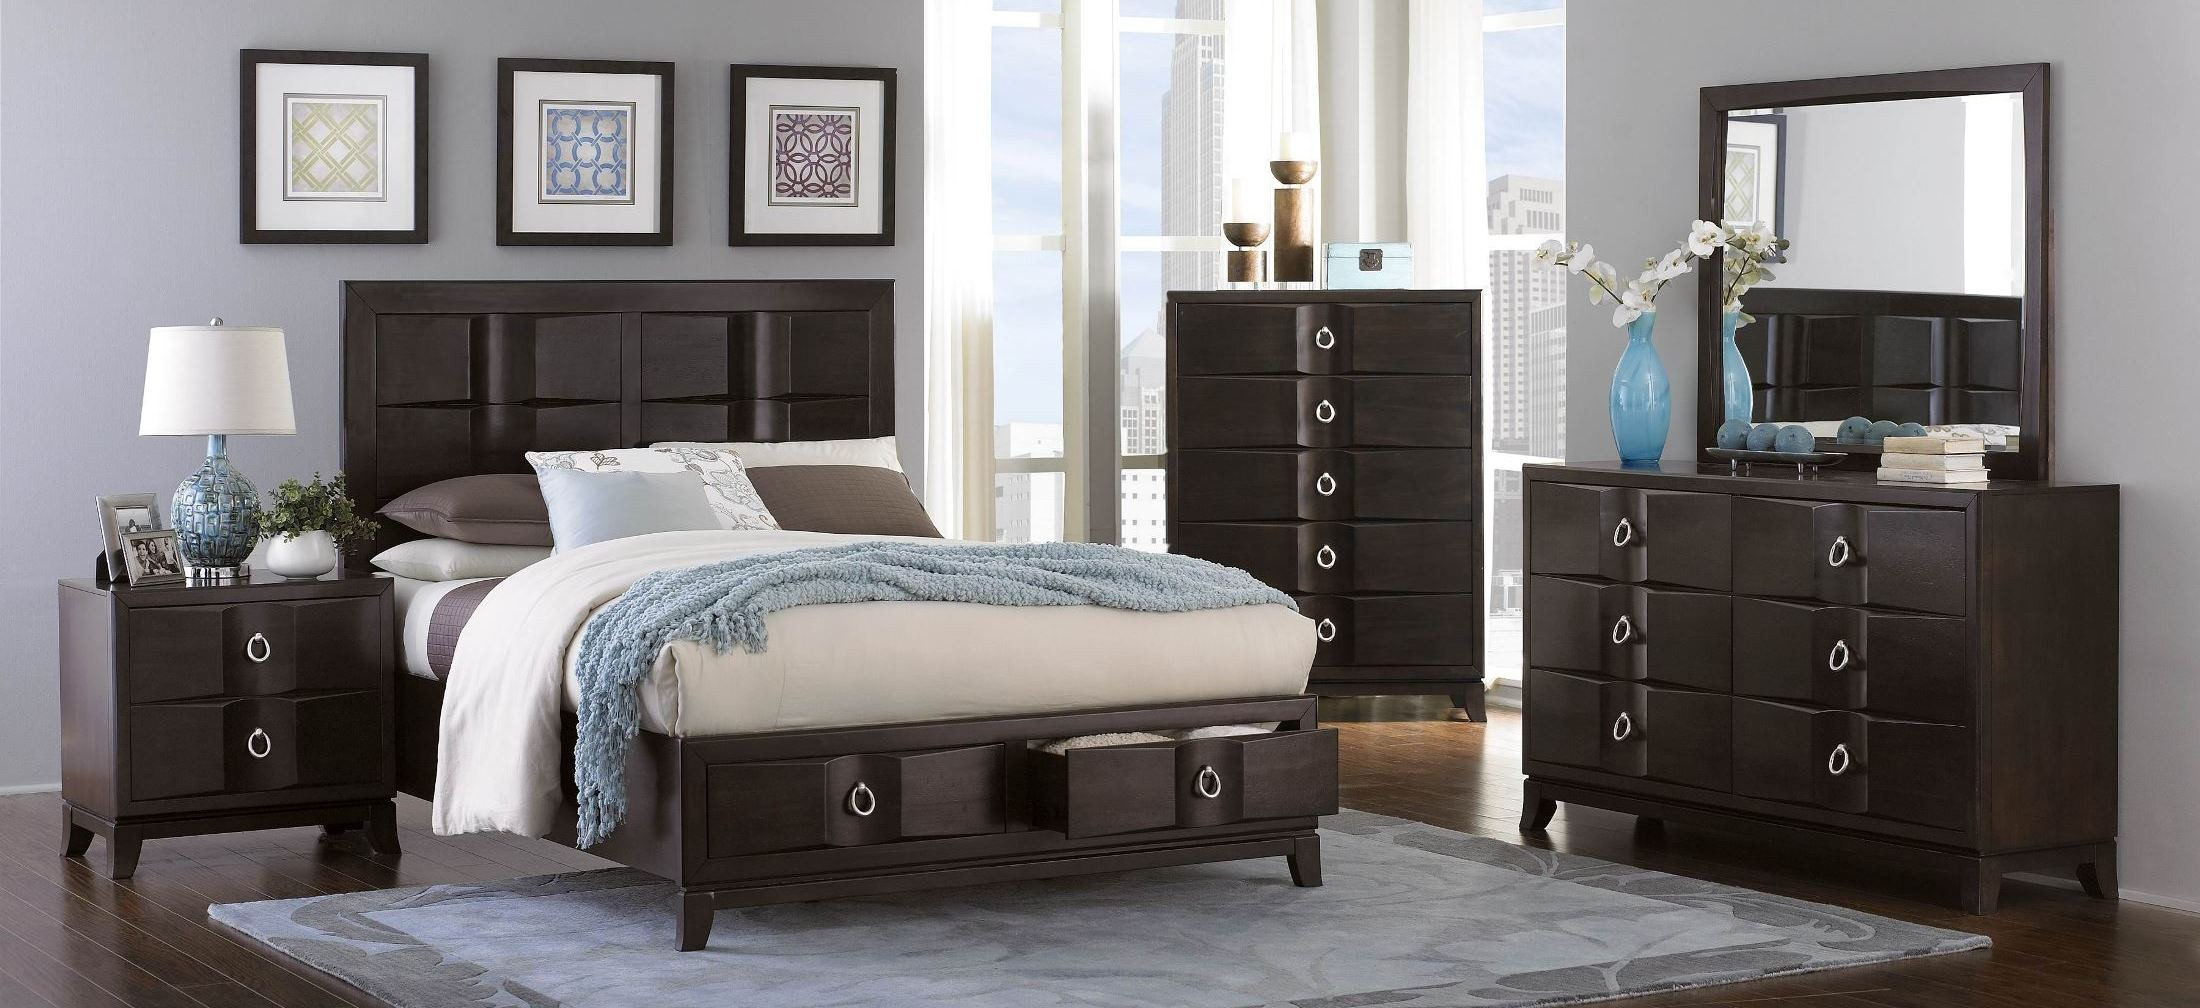 Edmonston Platform Storage Bedroom Set From Homelegance